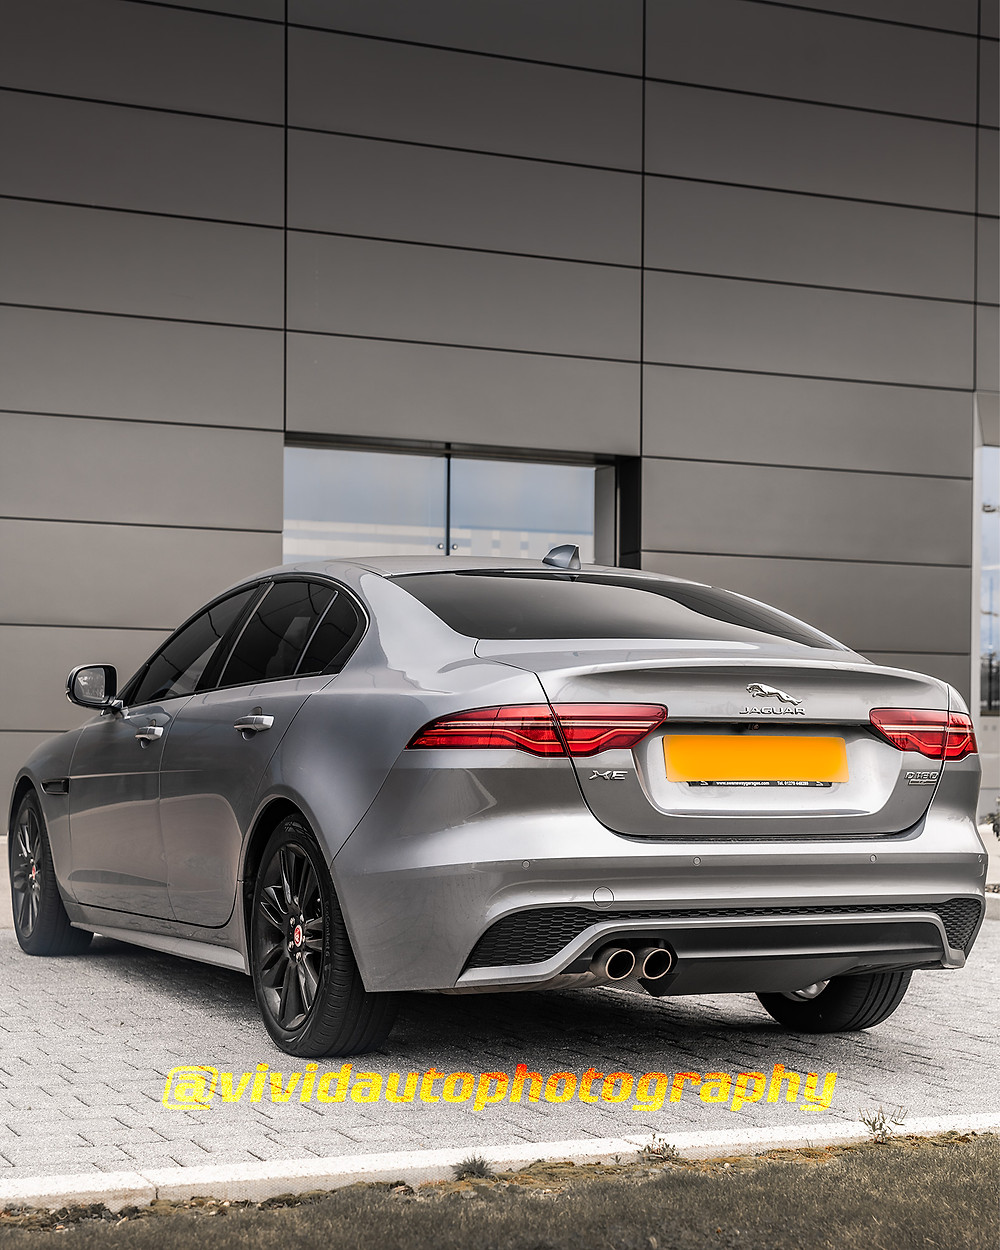 Jaguar XE | Indus Silver | Rear three quarters poster